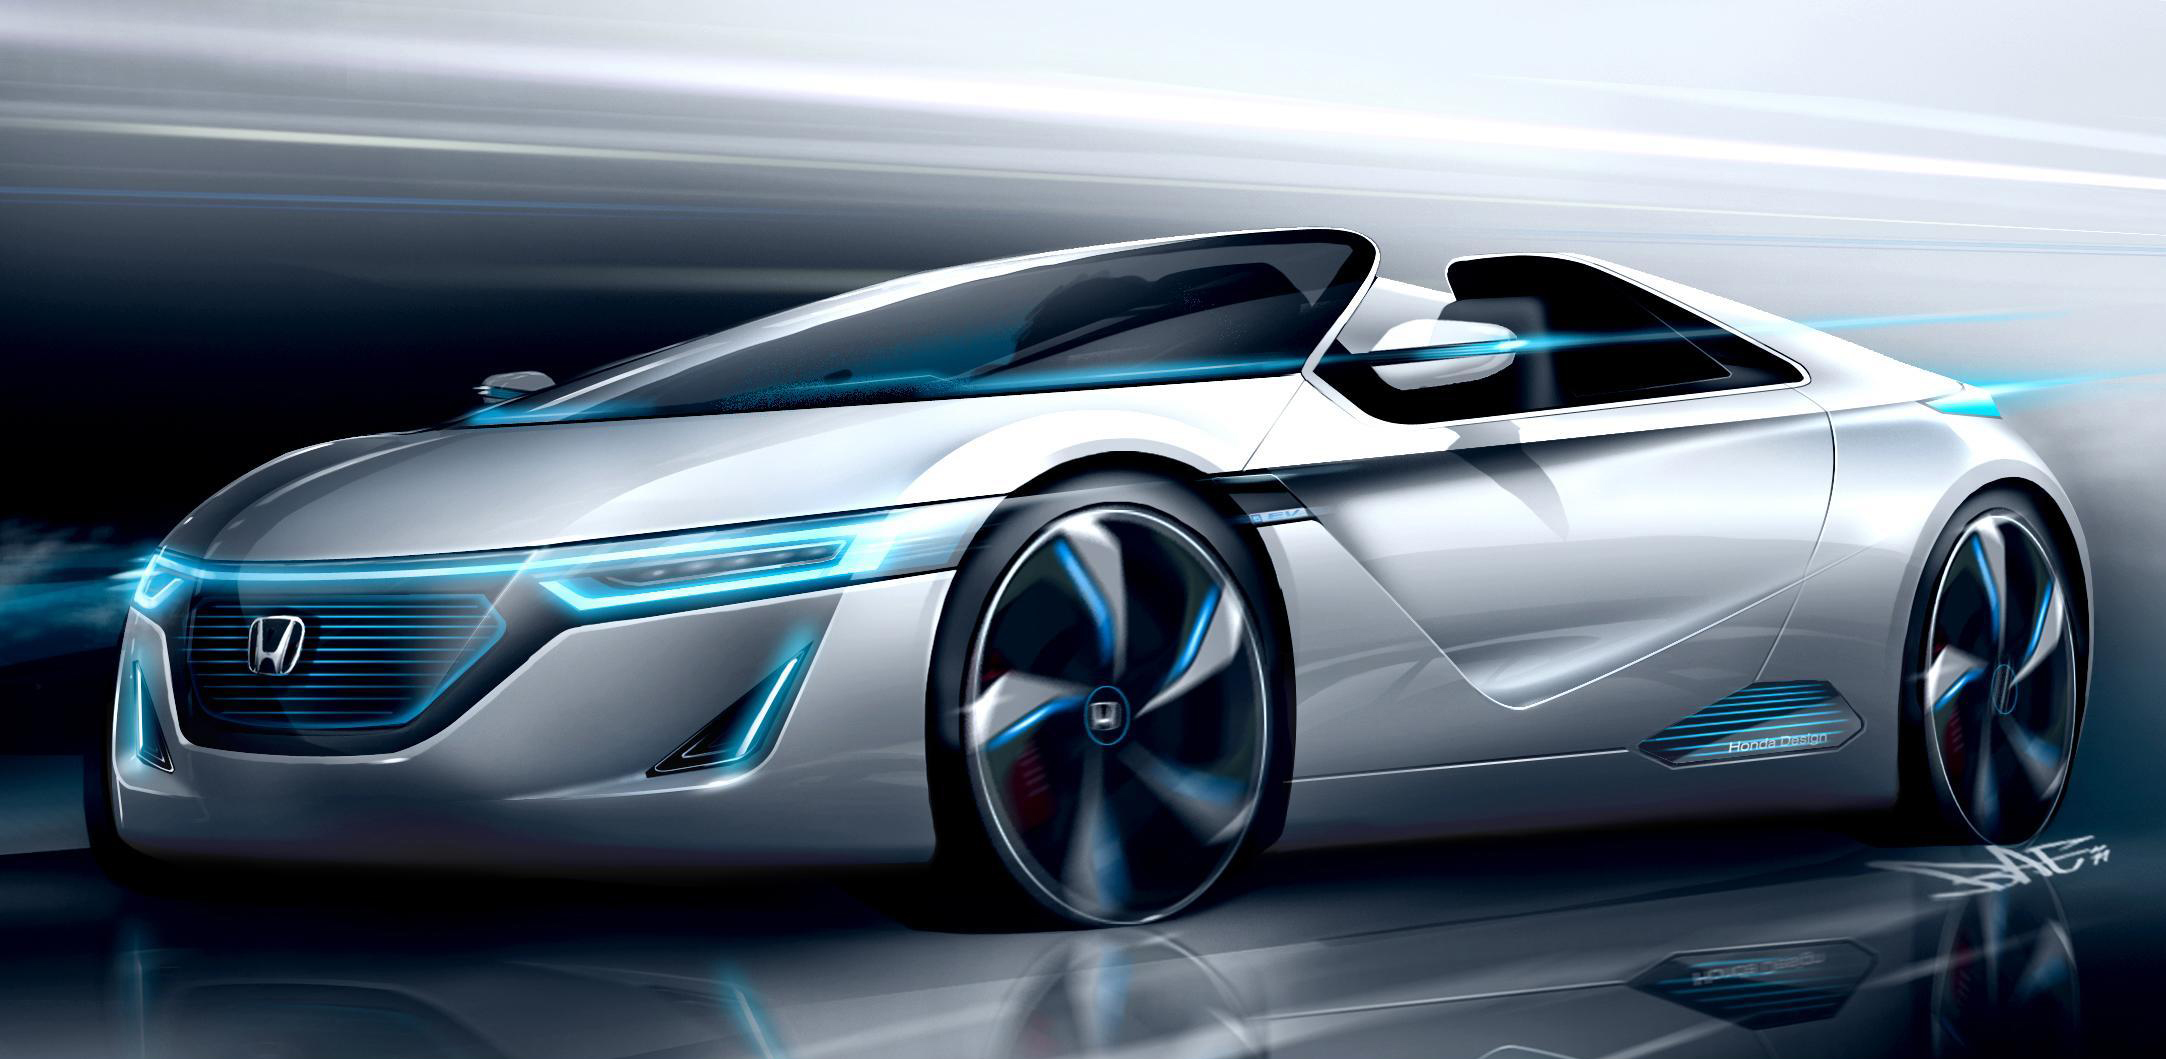 2012 Honda Ev Ster Concept News And Information Research